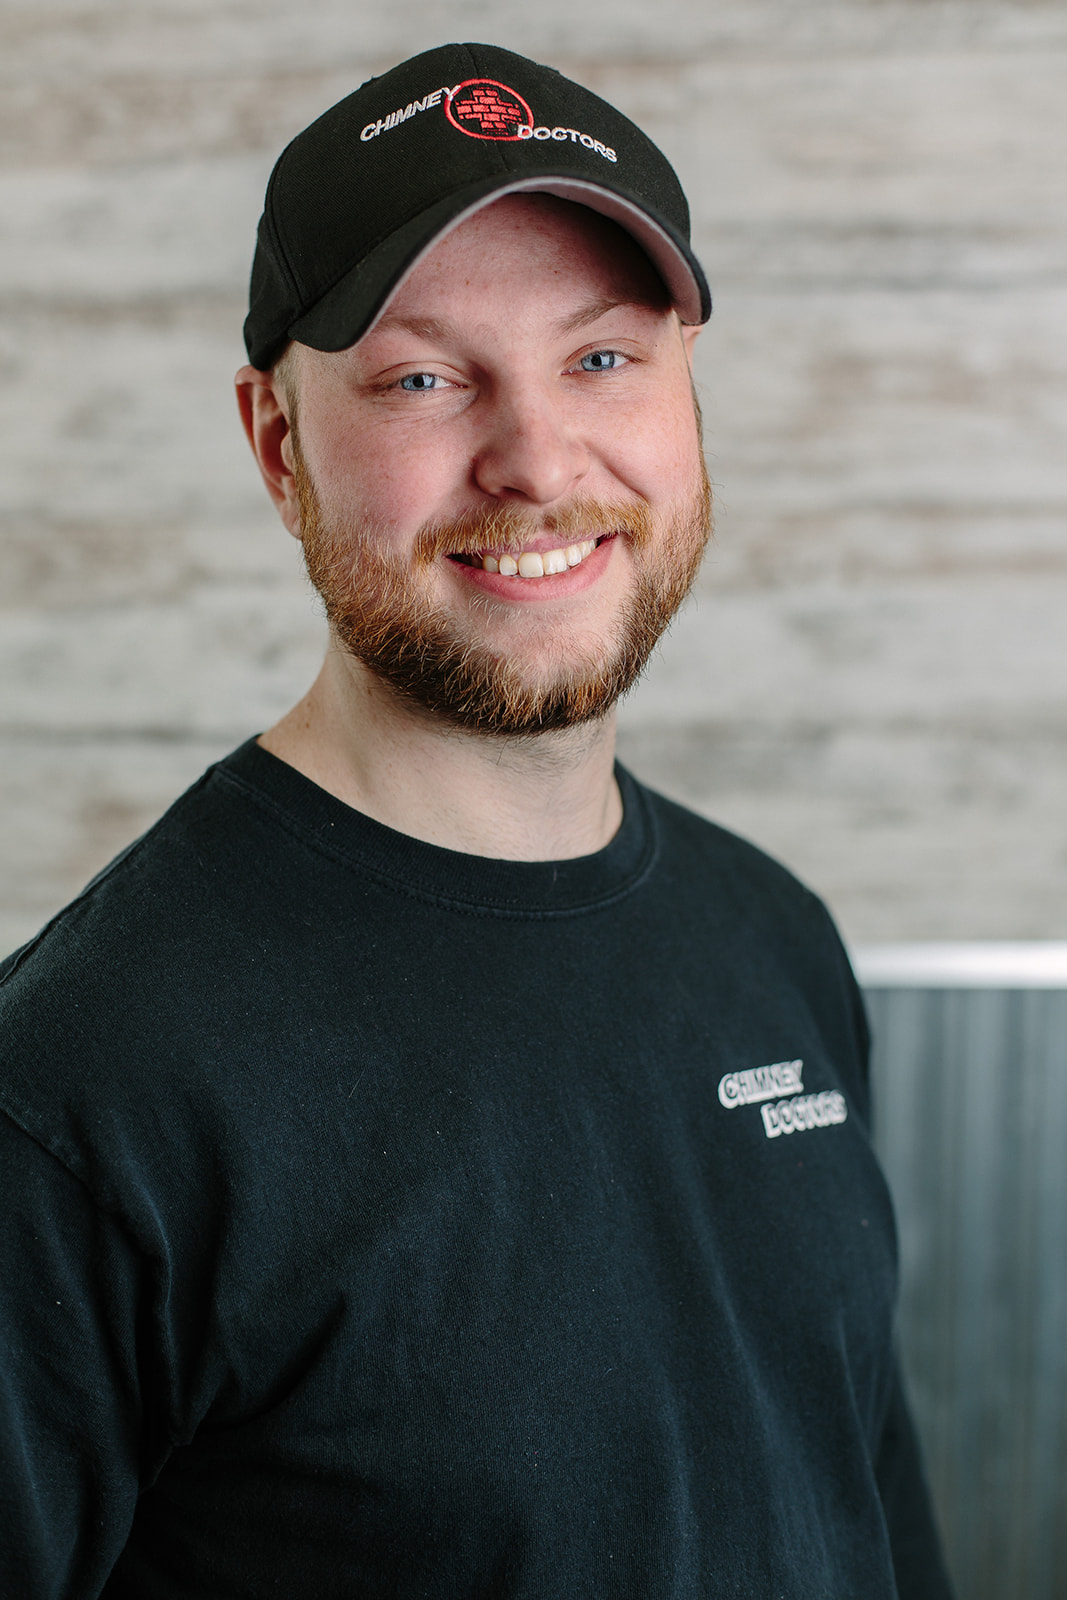 CSIA CertifiedChimney Technician - C.S.I.A Cert # 10015Caleb specializes in chimney inspections, sweeping, heat shield products, relining, and wood inserts.